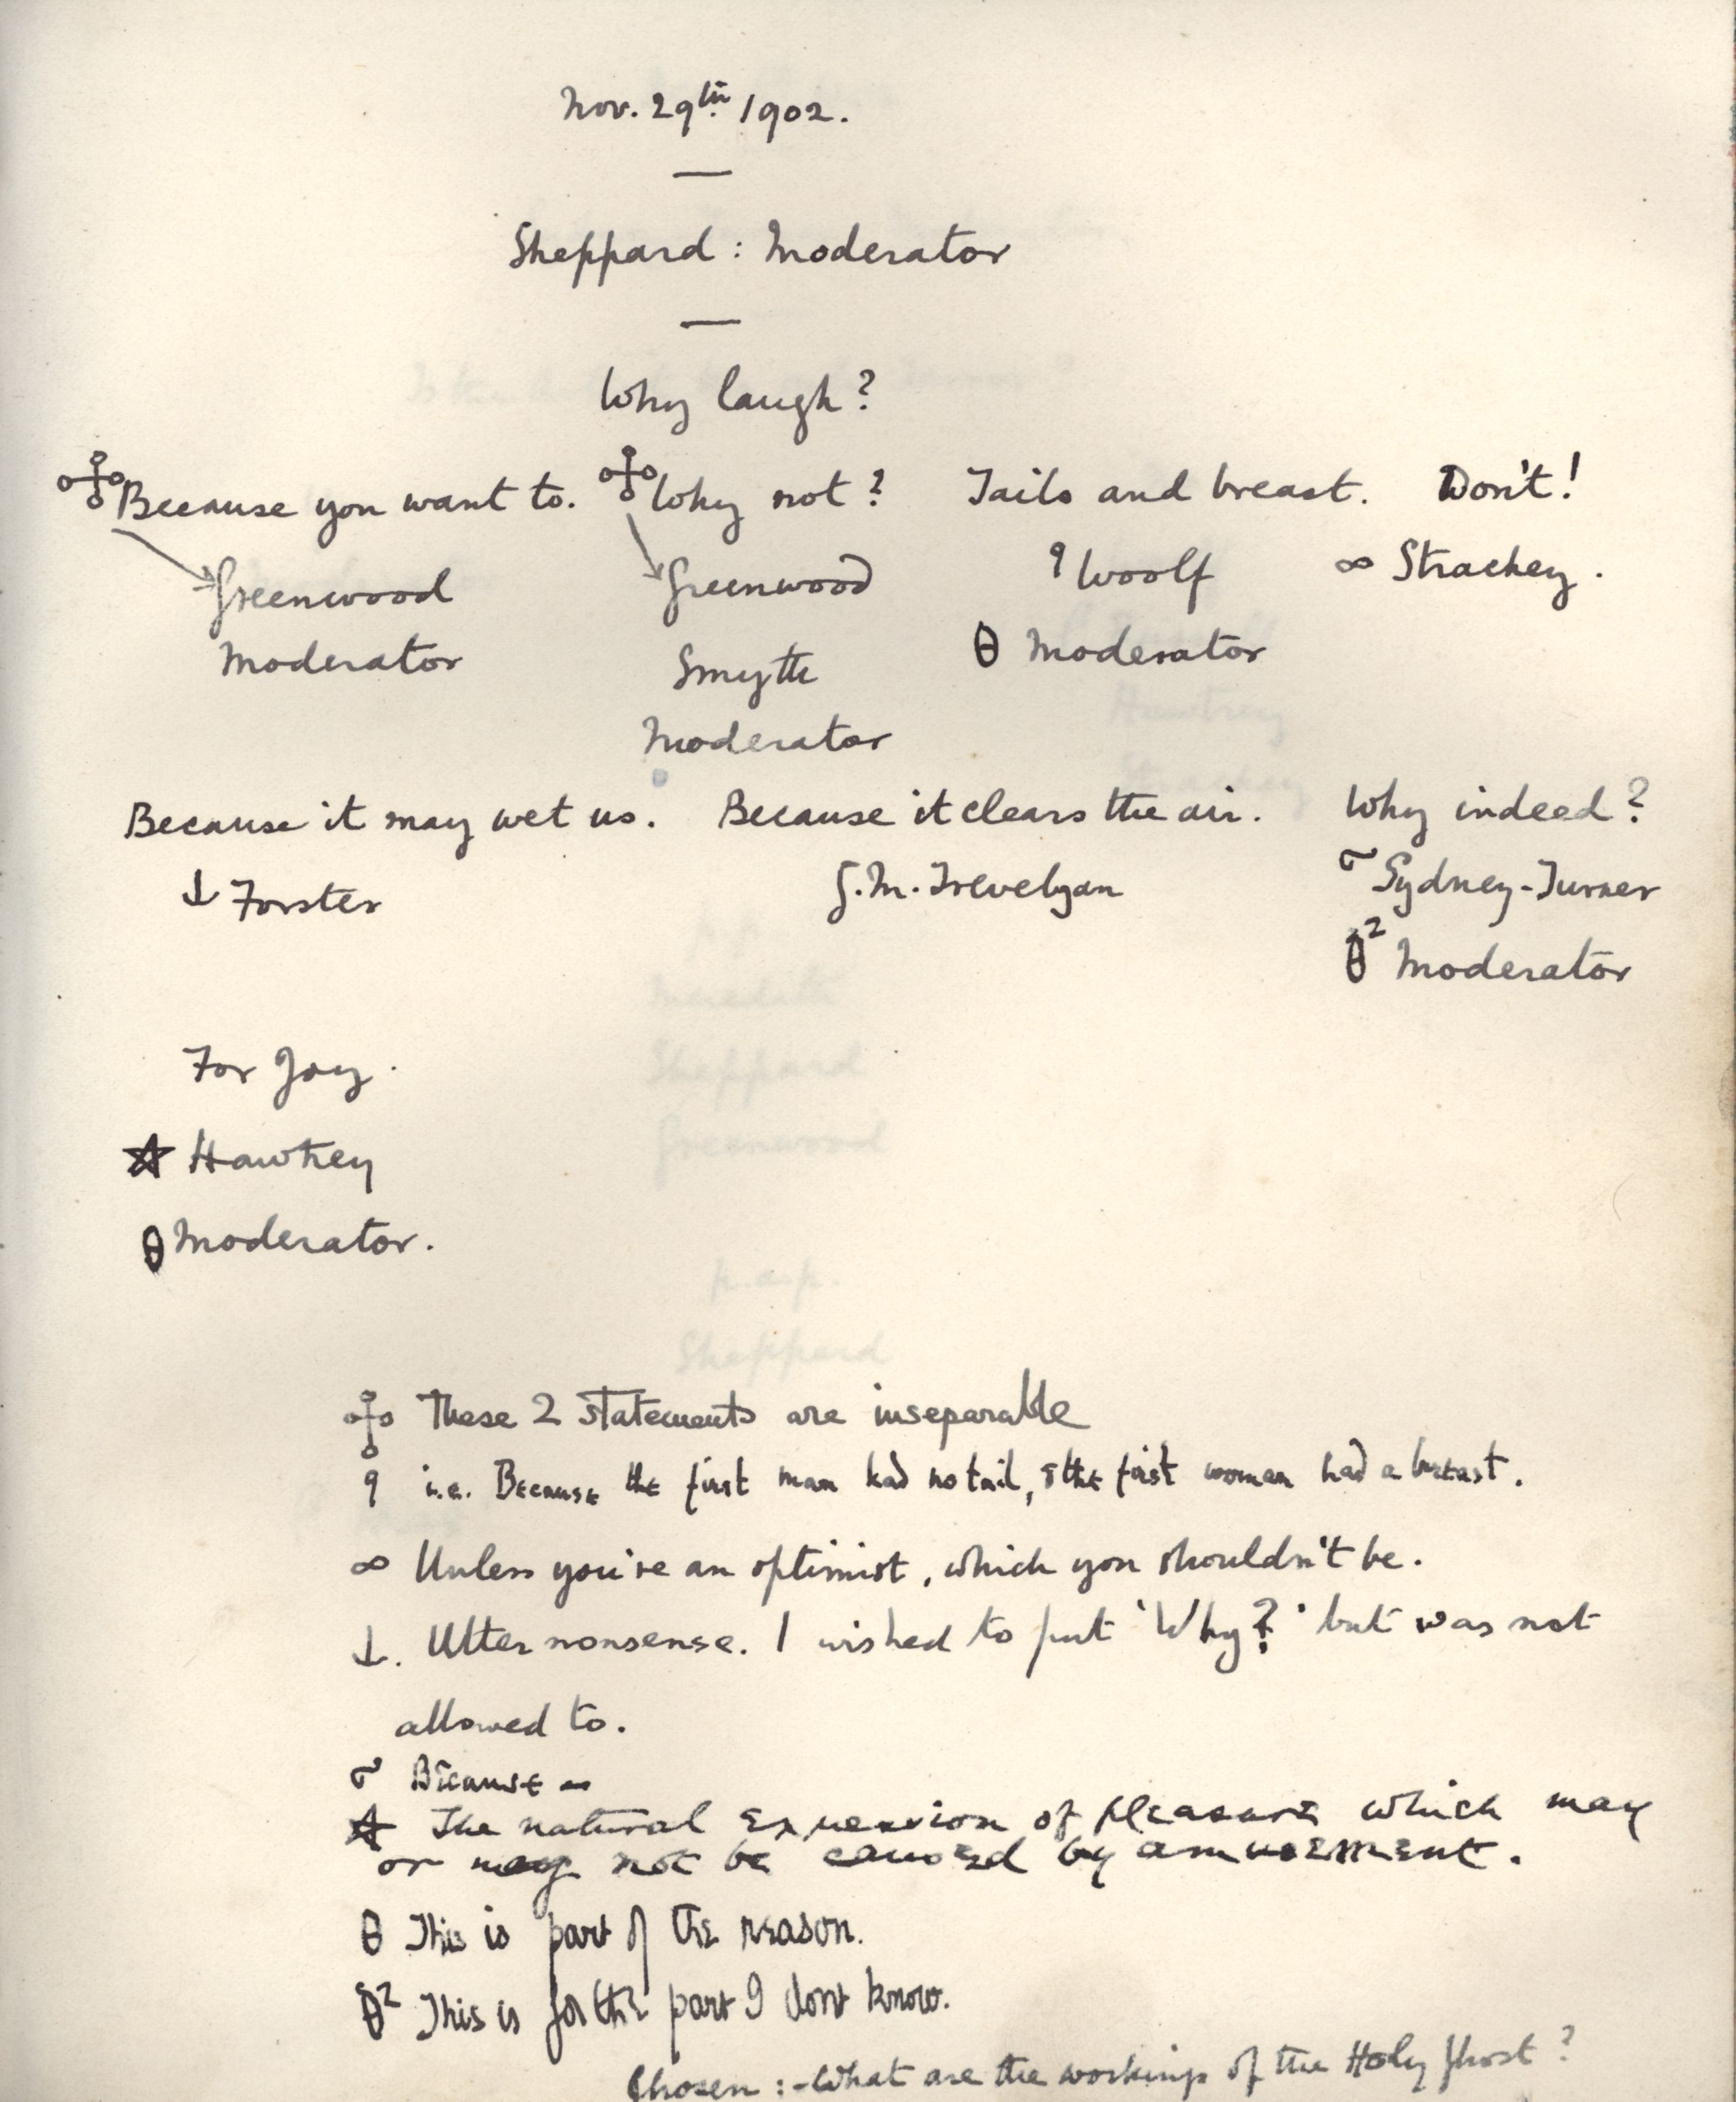 Minutes of a meeting in which Sheppard asked 'Why laugh?' [KCAS/39/1/14, 29 November 1902]